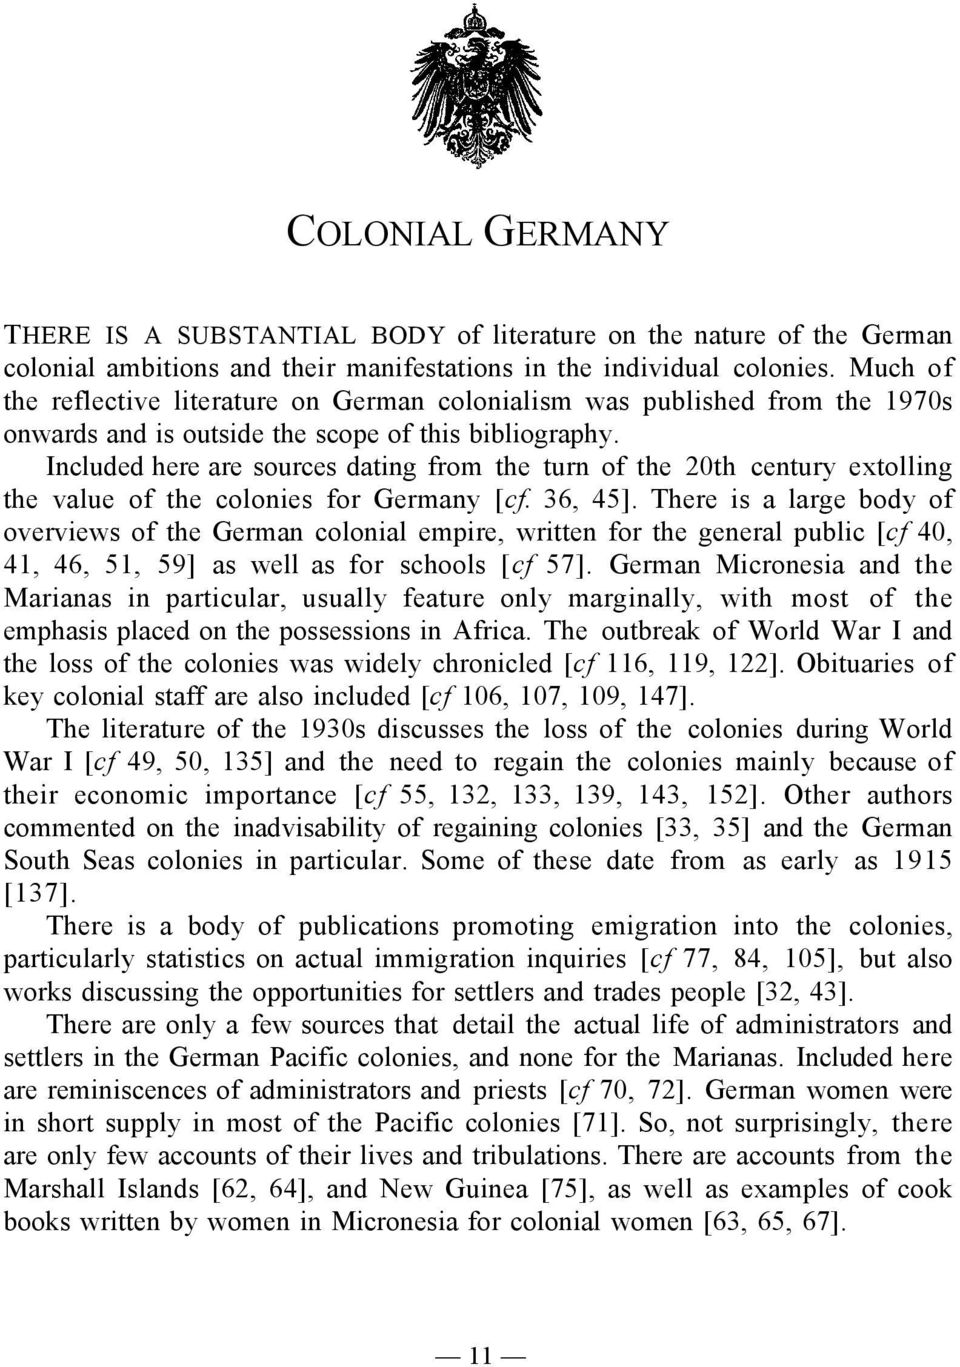 Included here are sources dating from the turn of the 20th century extolling the value of the colonies for Germany [cf. 36, 45].